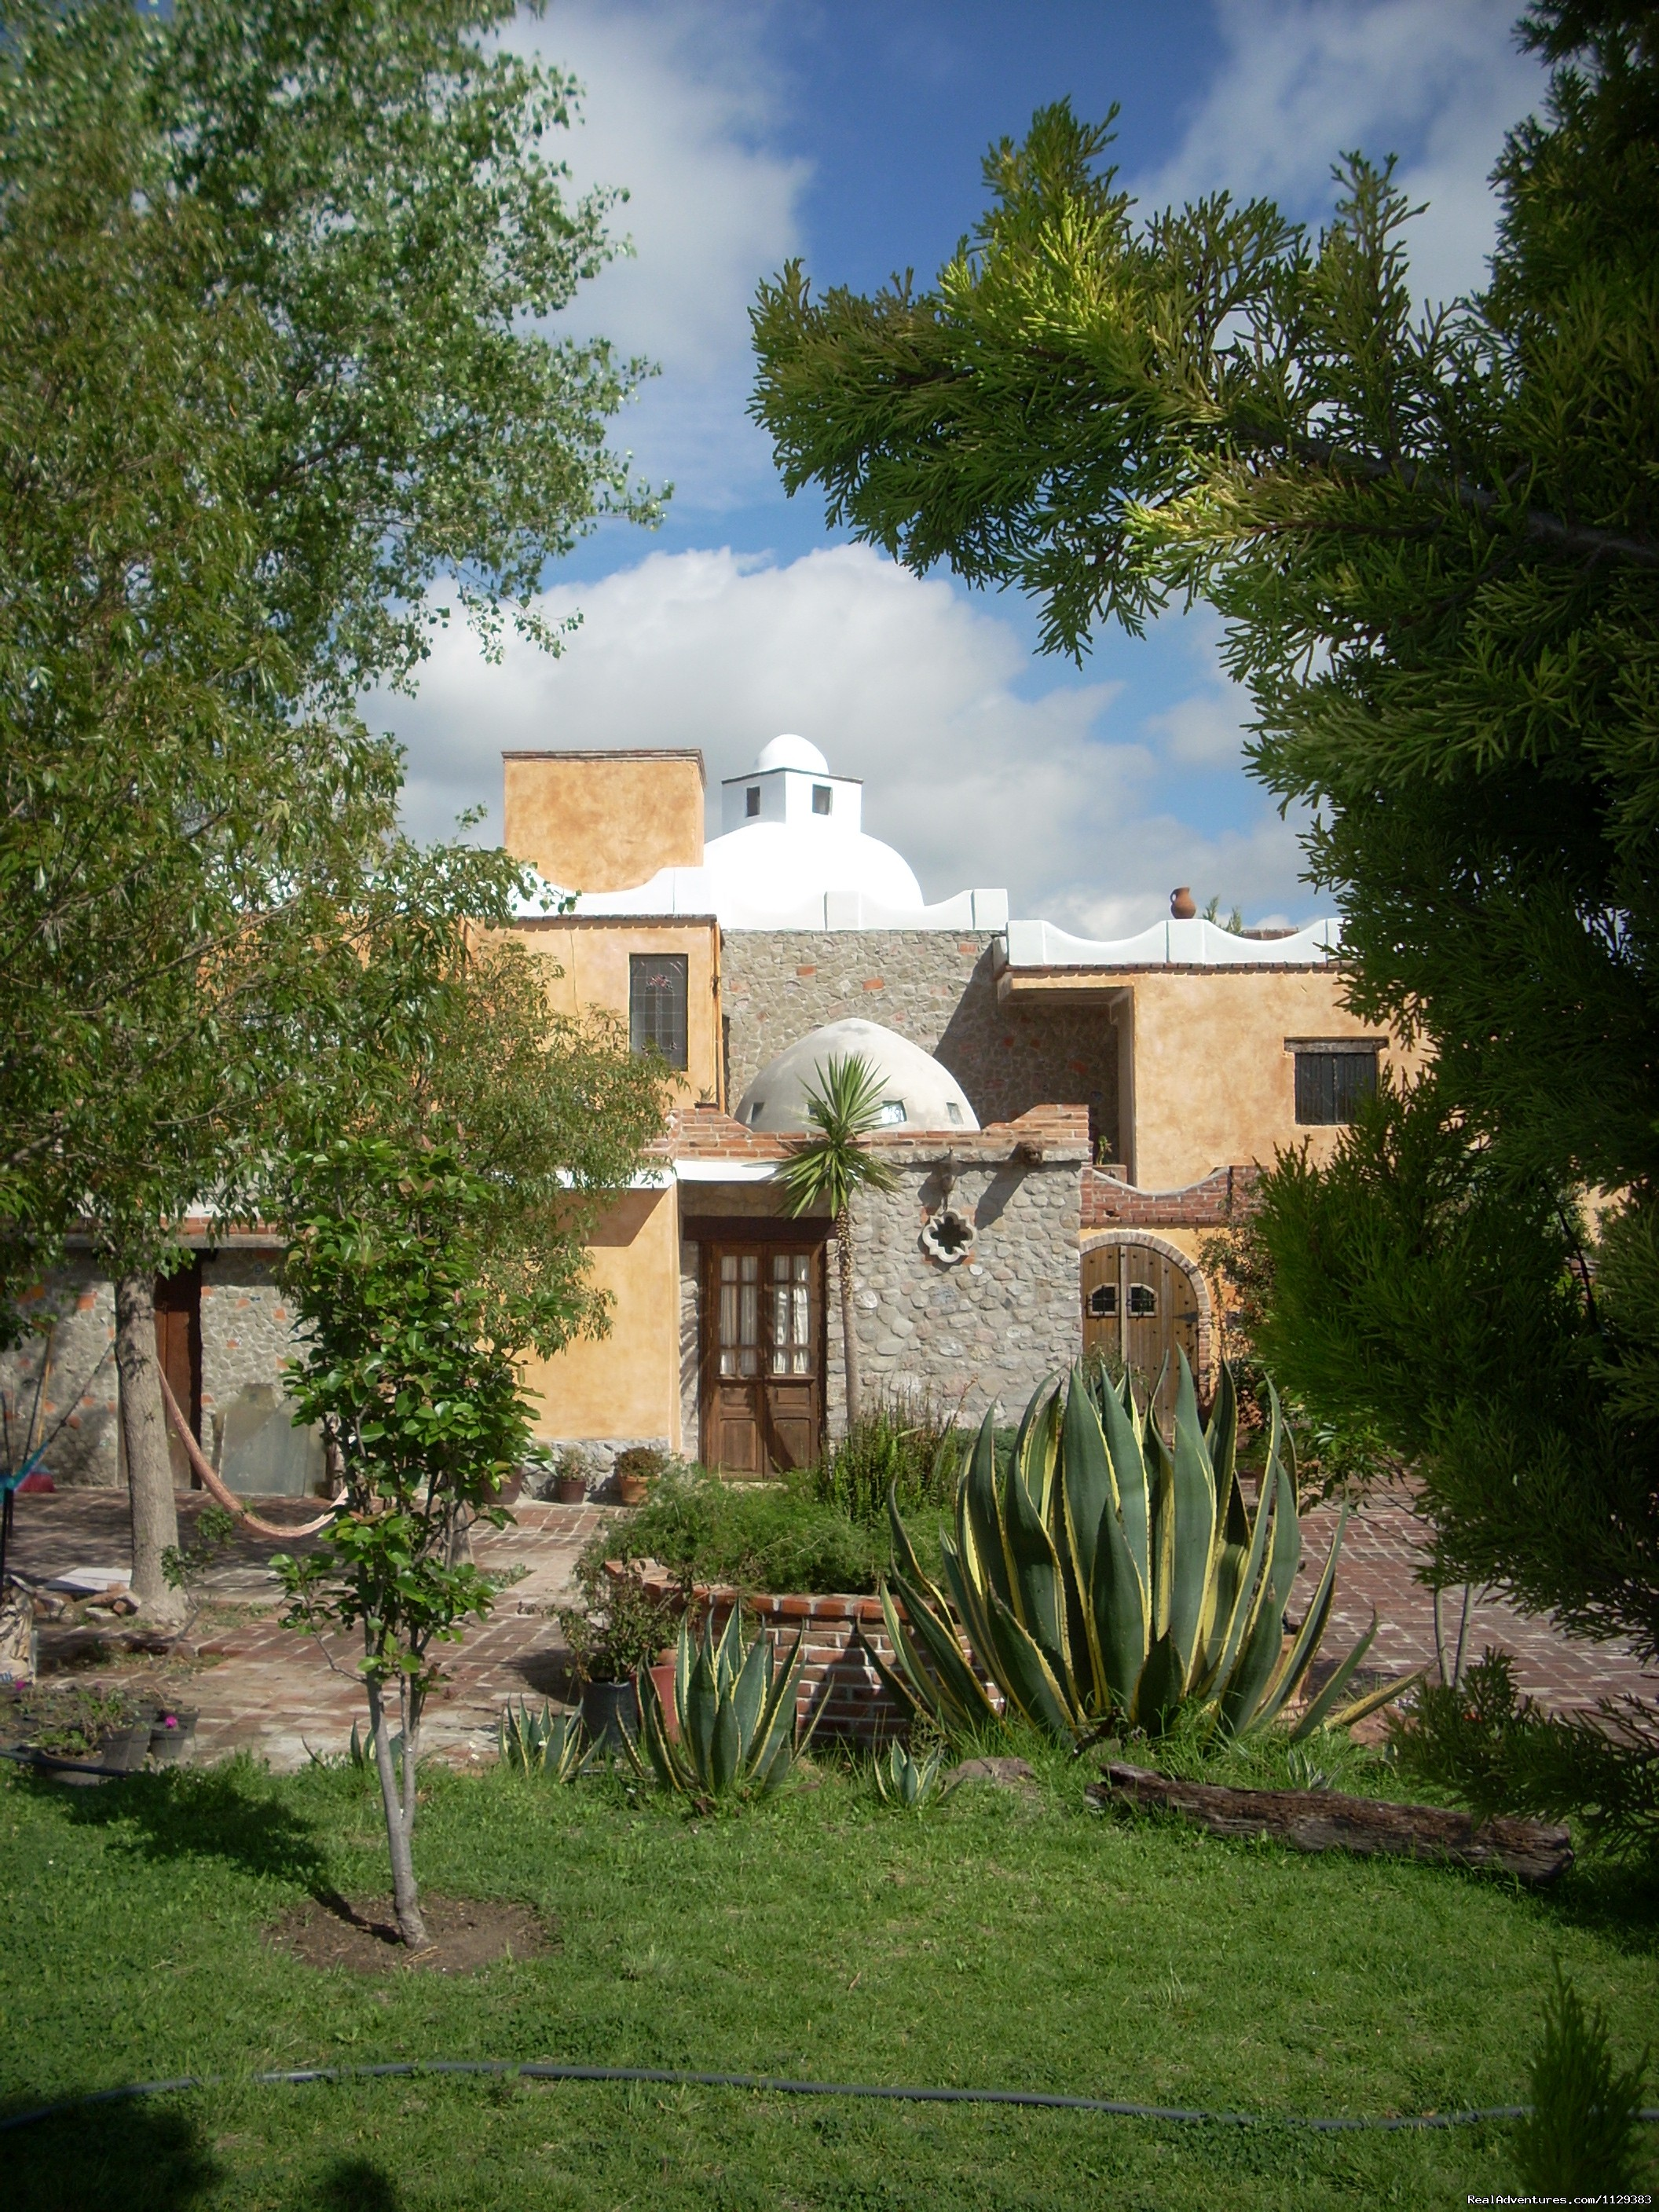 Casa Carmelita (Mexican Home Cooking School) | Image #5/22 | Mexican Home Cooking School boutique accommodation